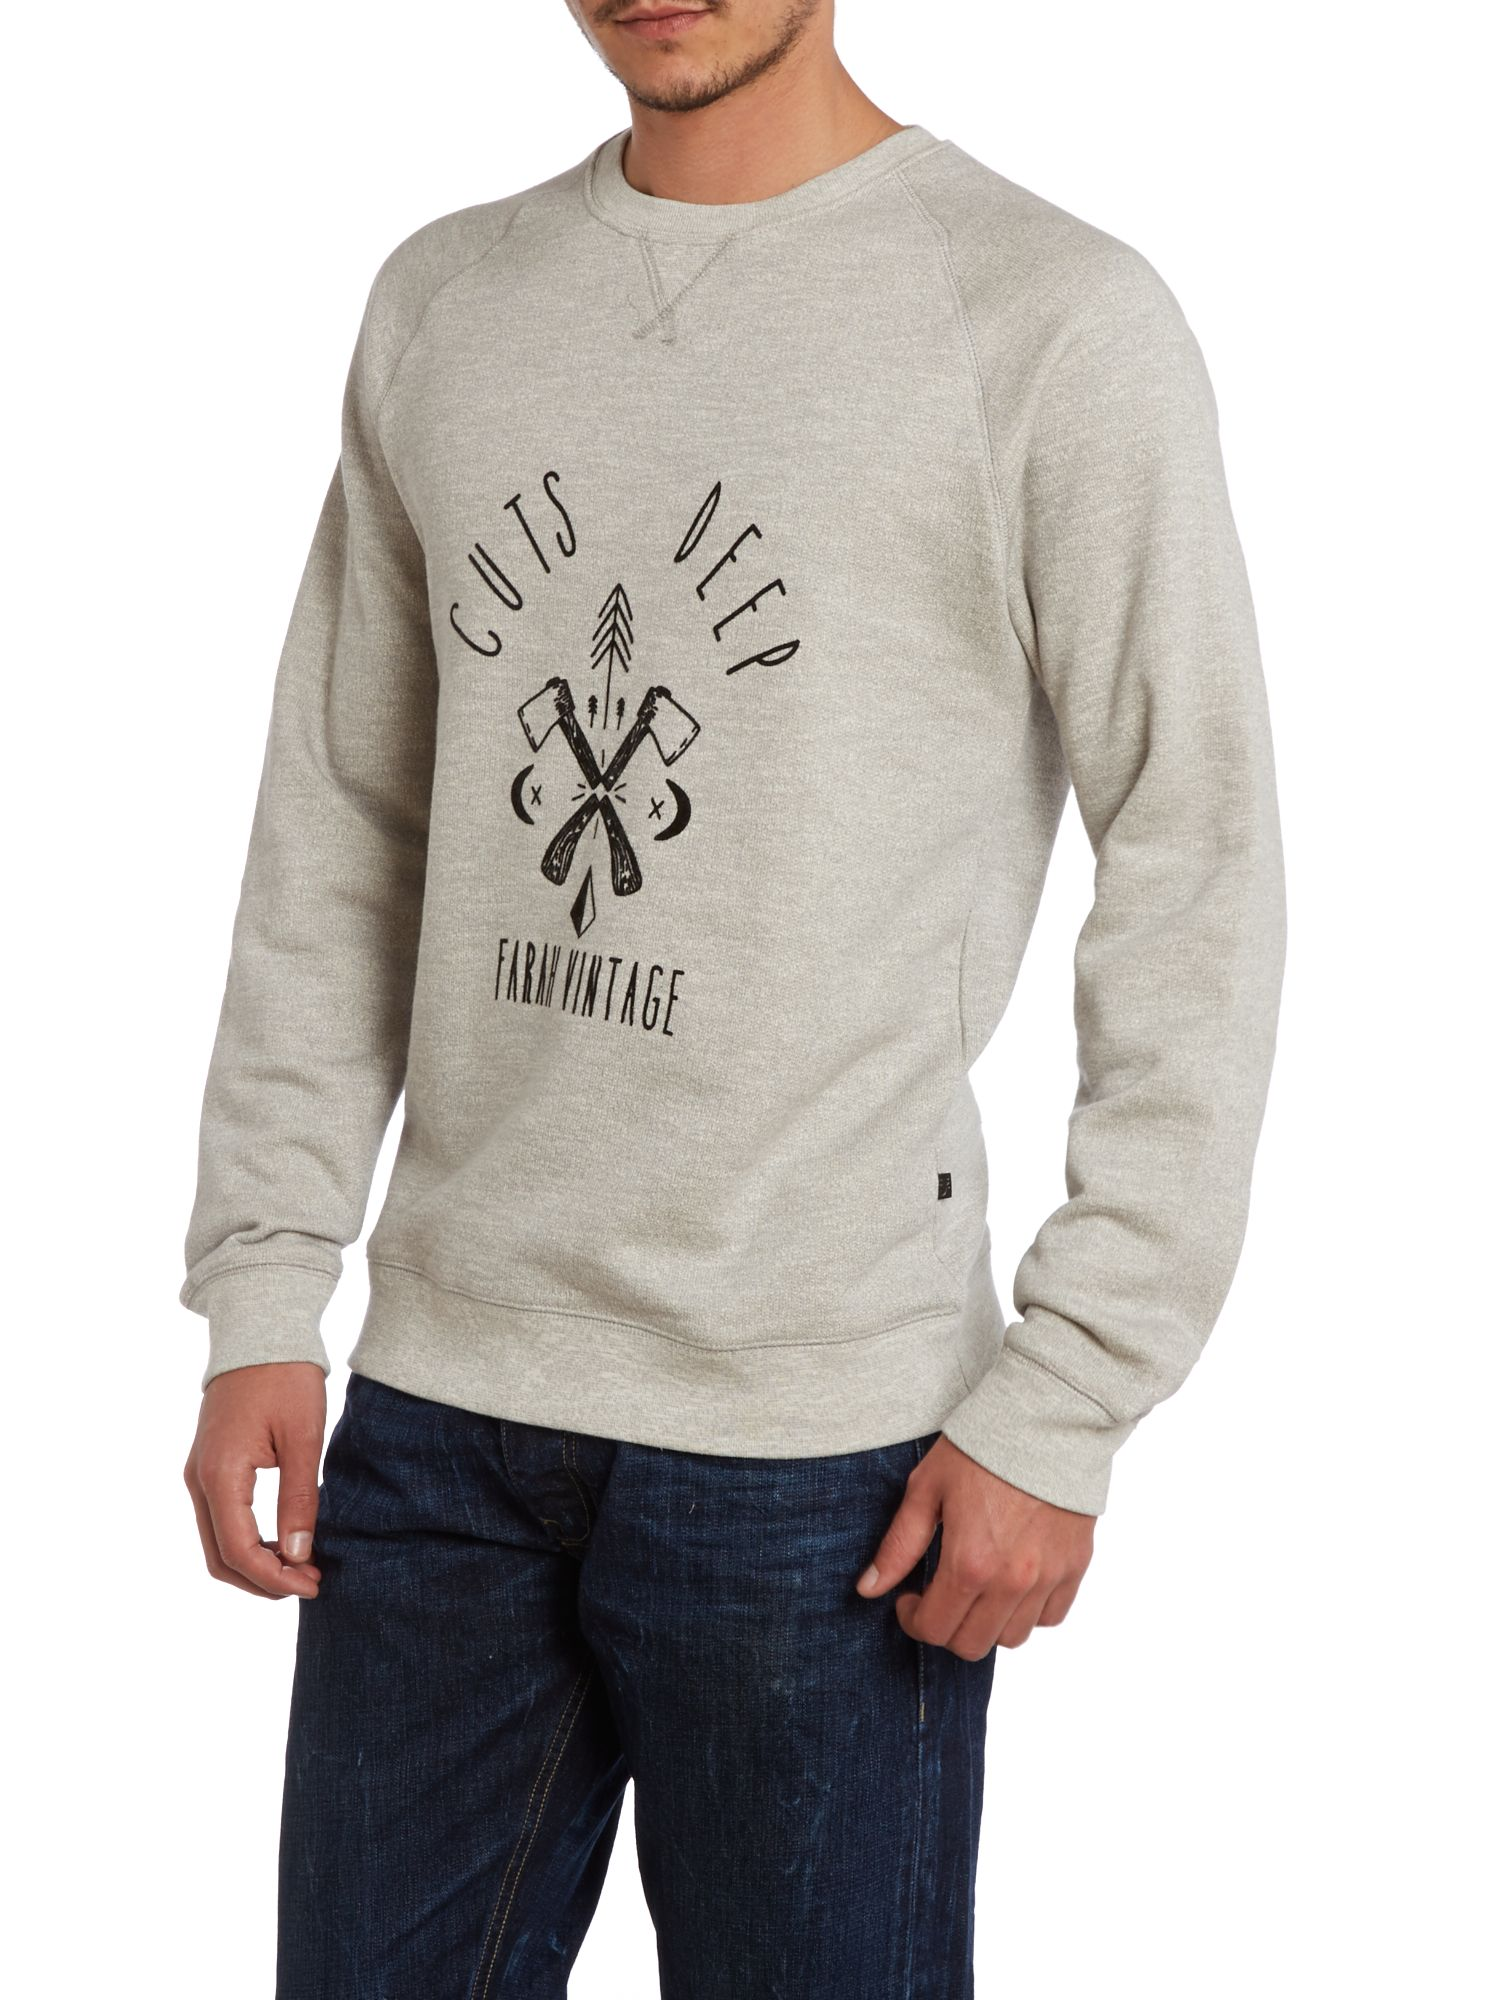 Axe cuts deep print crew neck sweatshirt